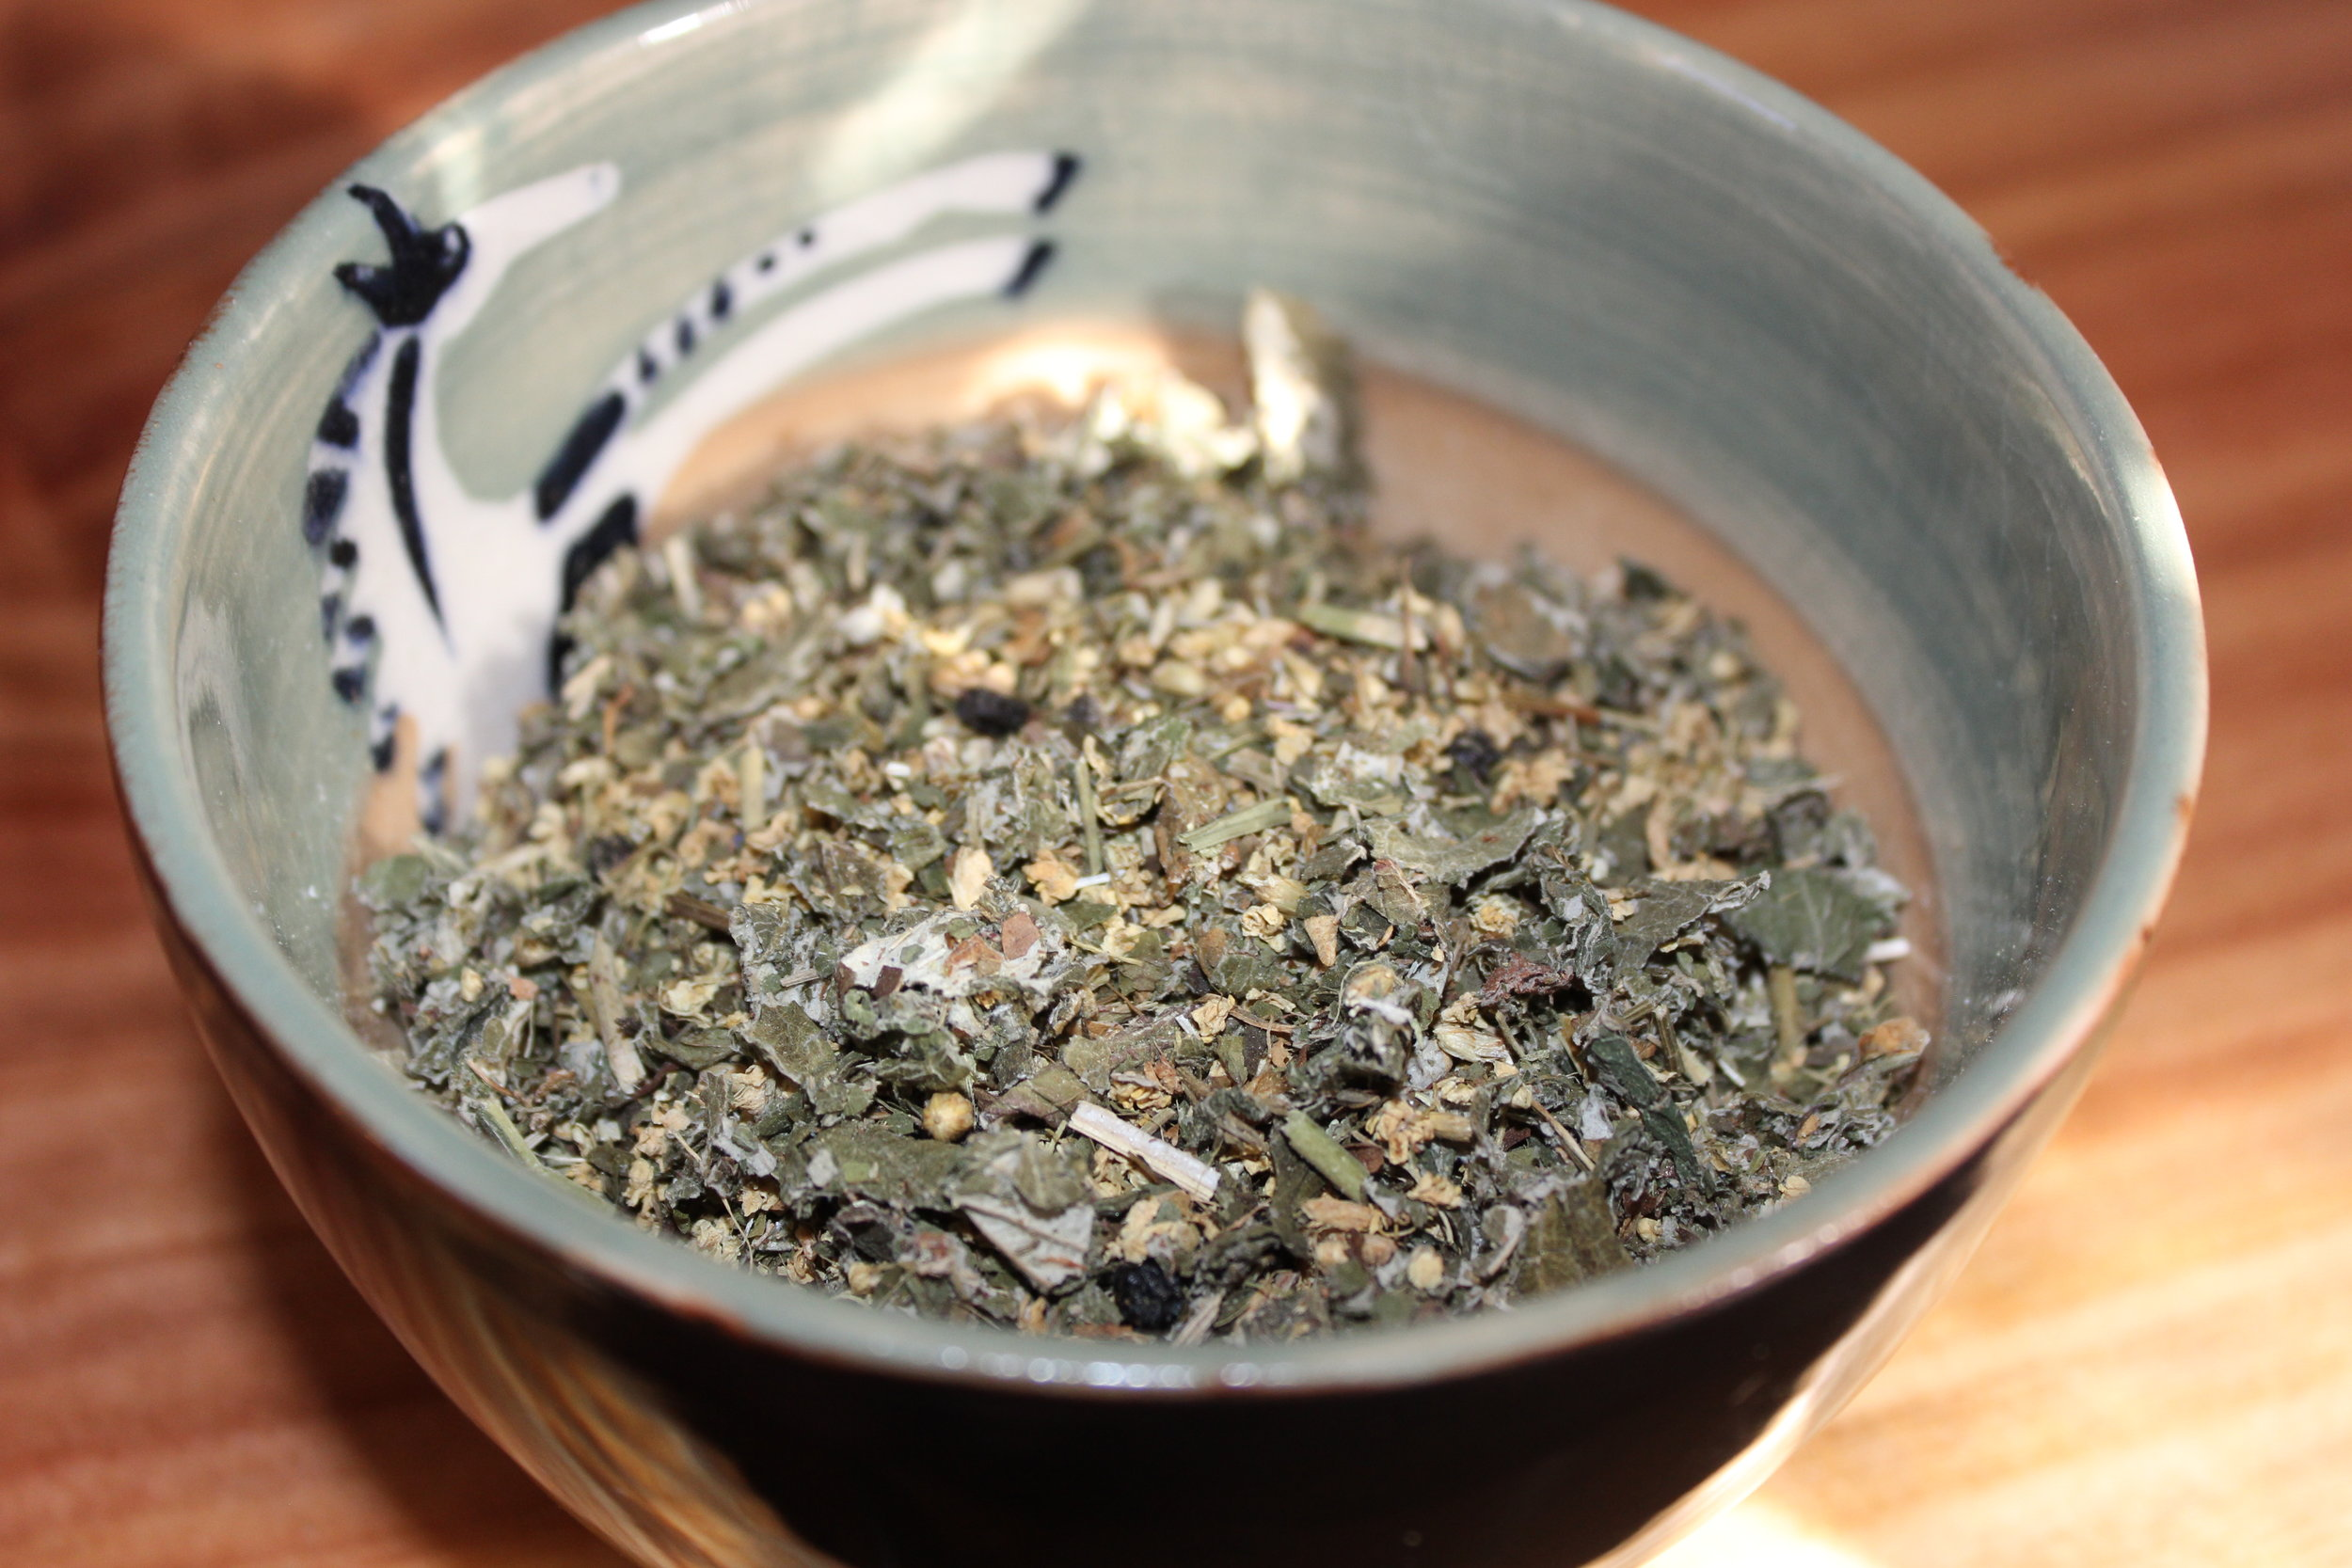 This is Tea for the Sniffles---A great blend to help reduce sinus inflammation and relieve stuffy nose.